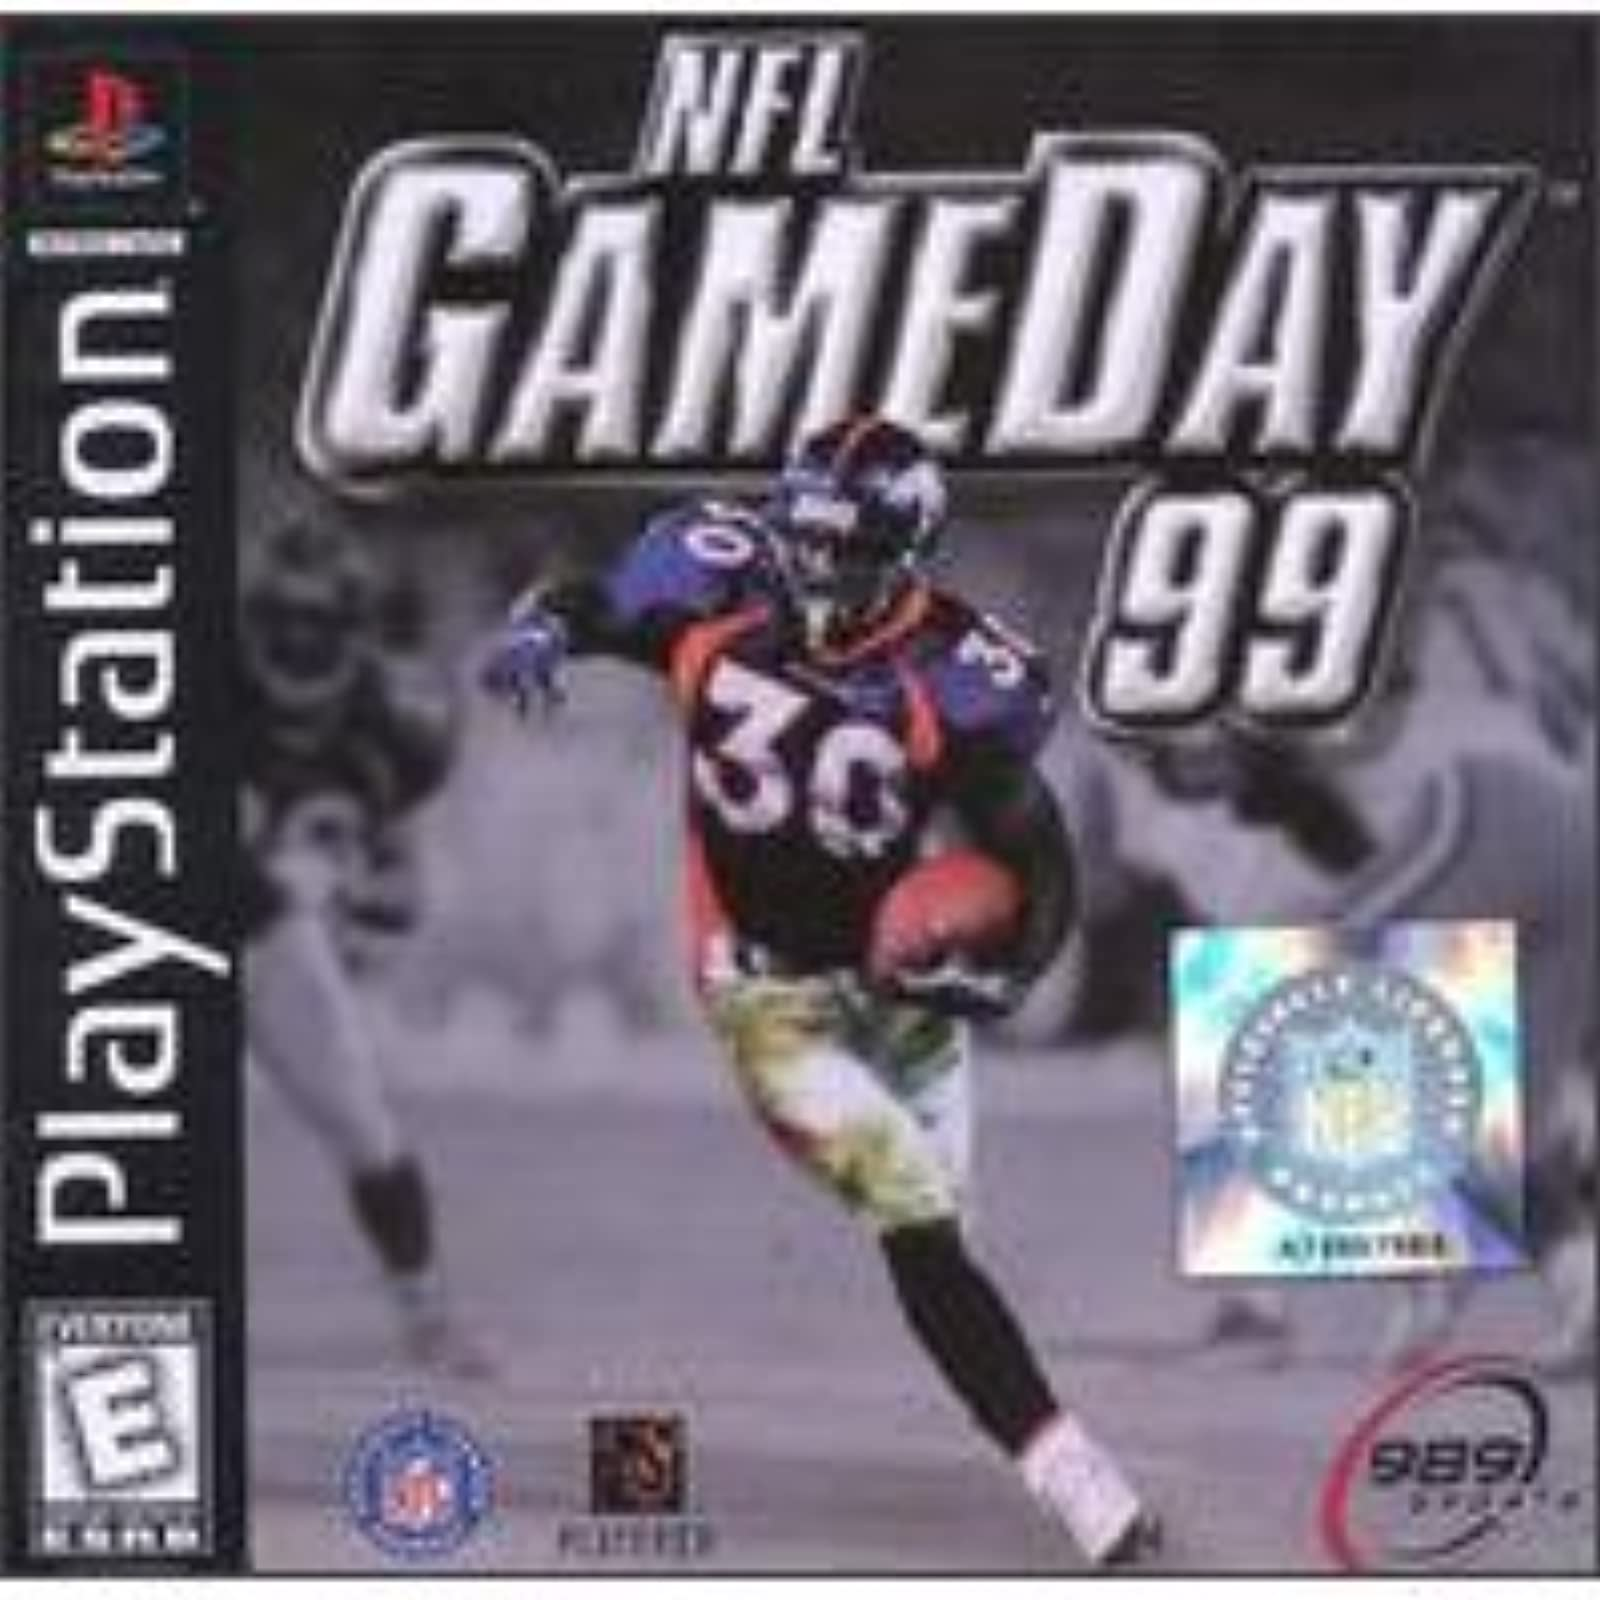 NFL Gameday 99 For PlayStation 1 PS1 Football